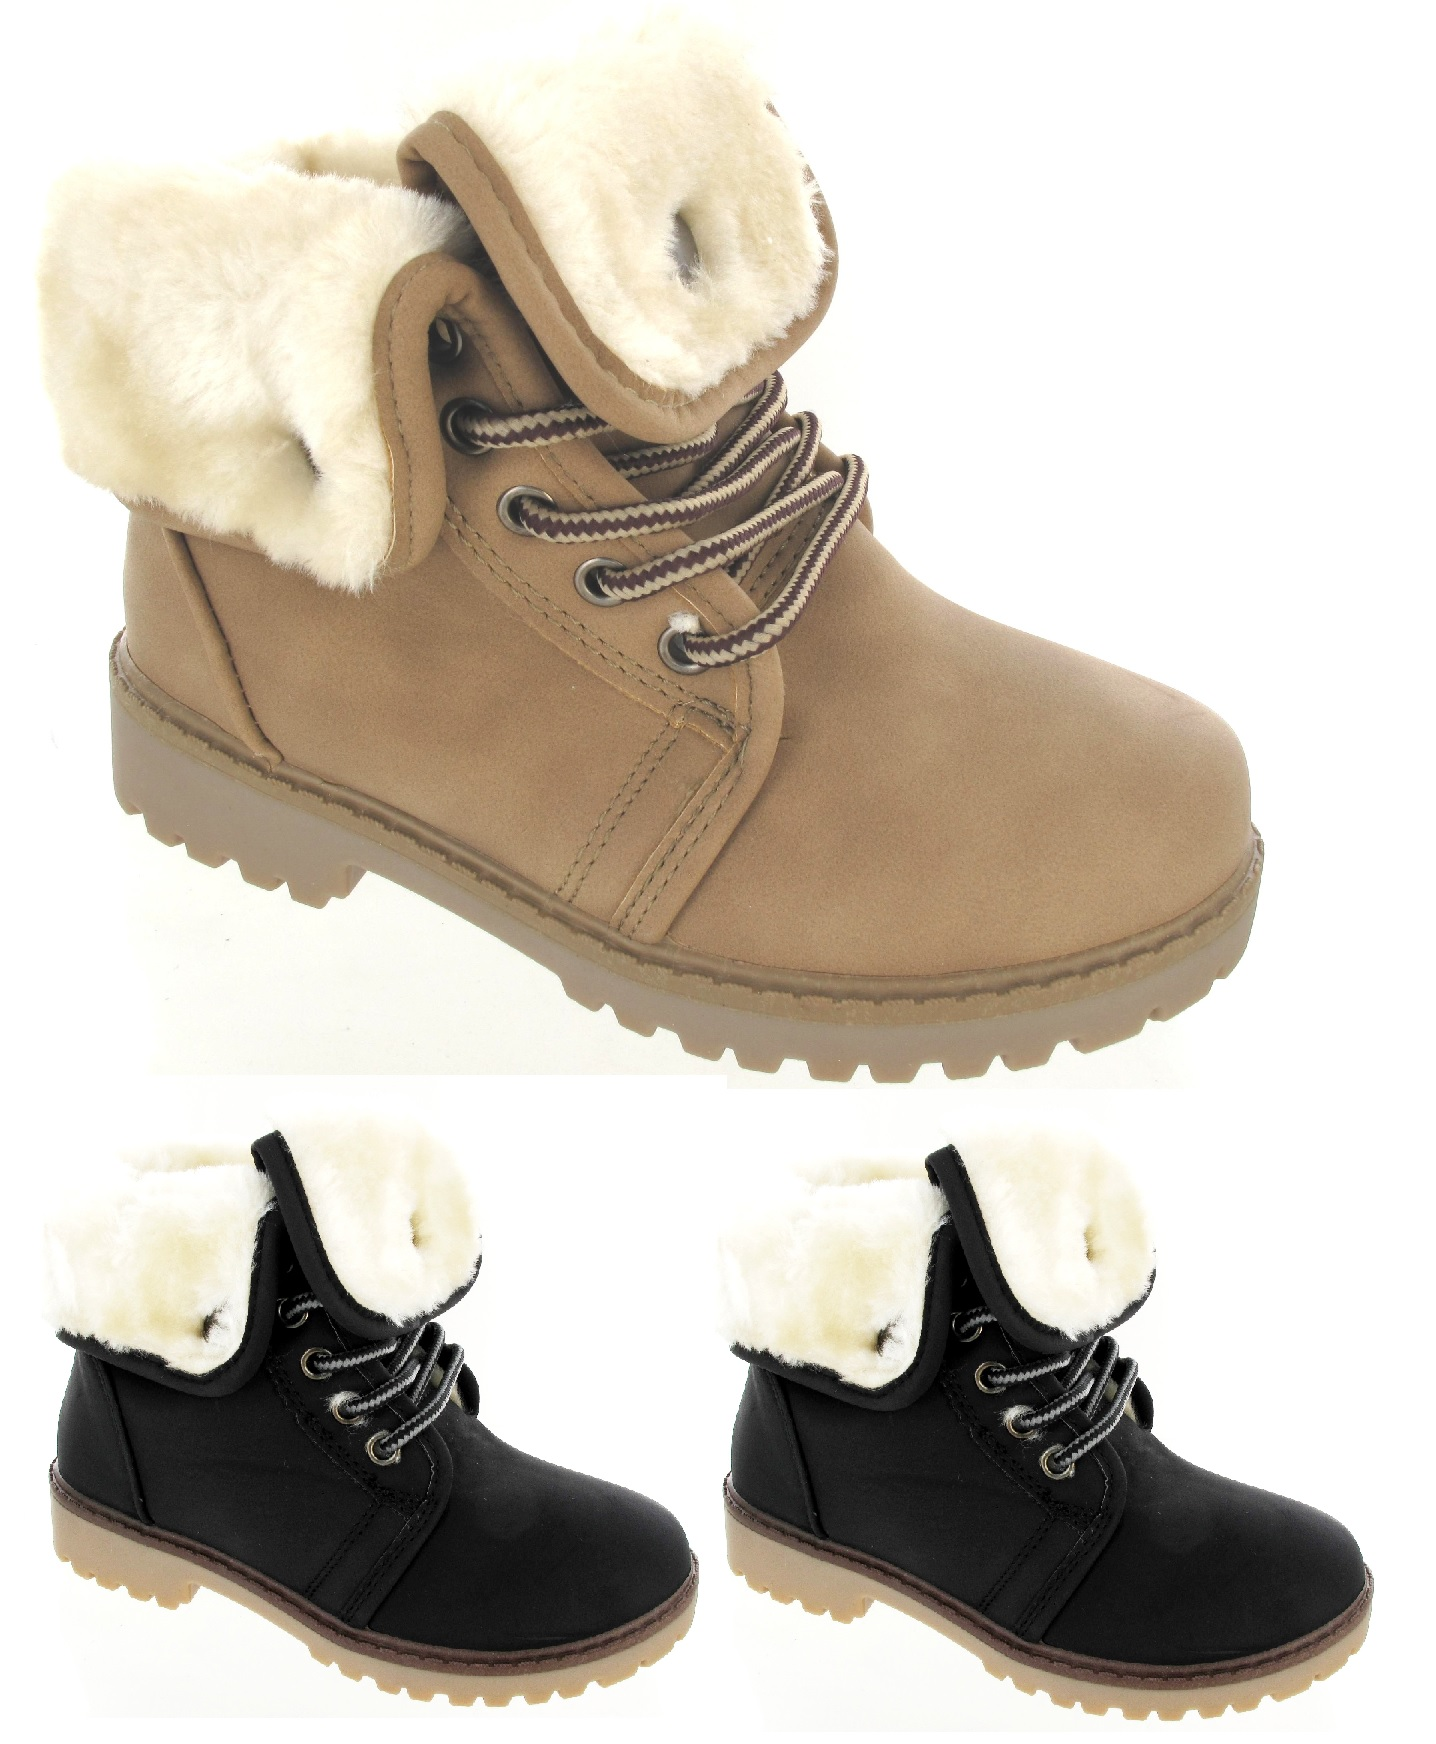 boys flat ankle boots childrens winter fur lined